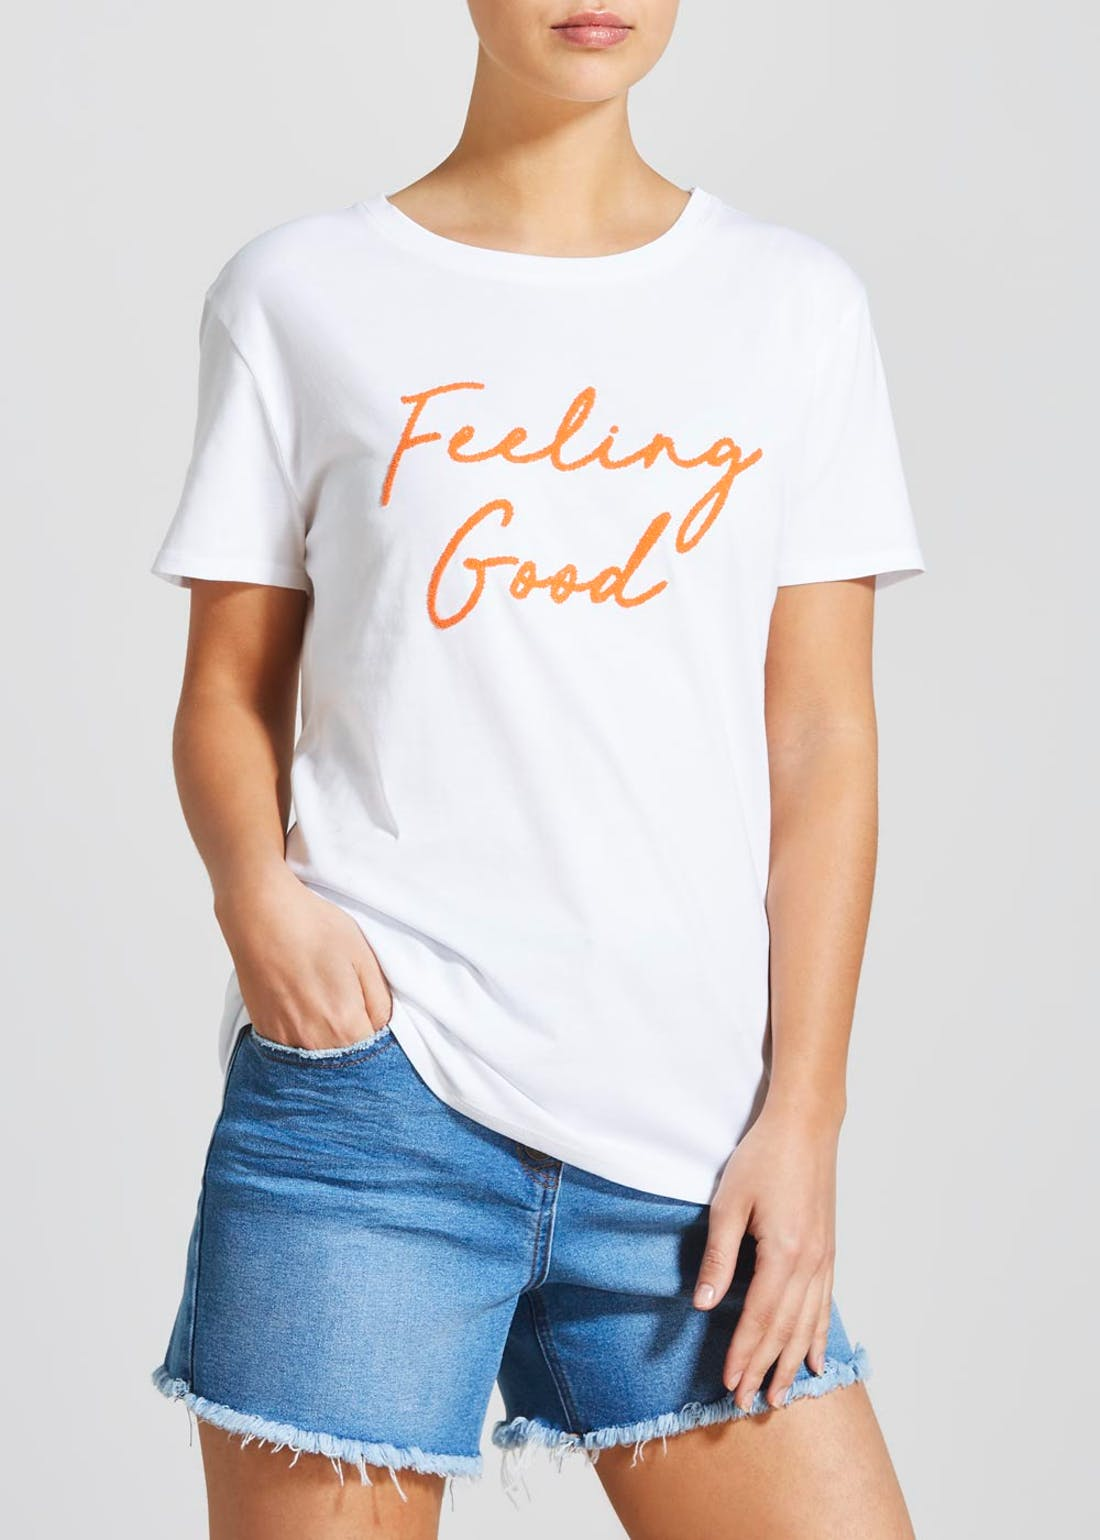 Feeling Good Slogan T-Shirt